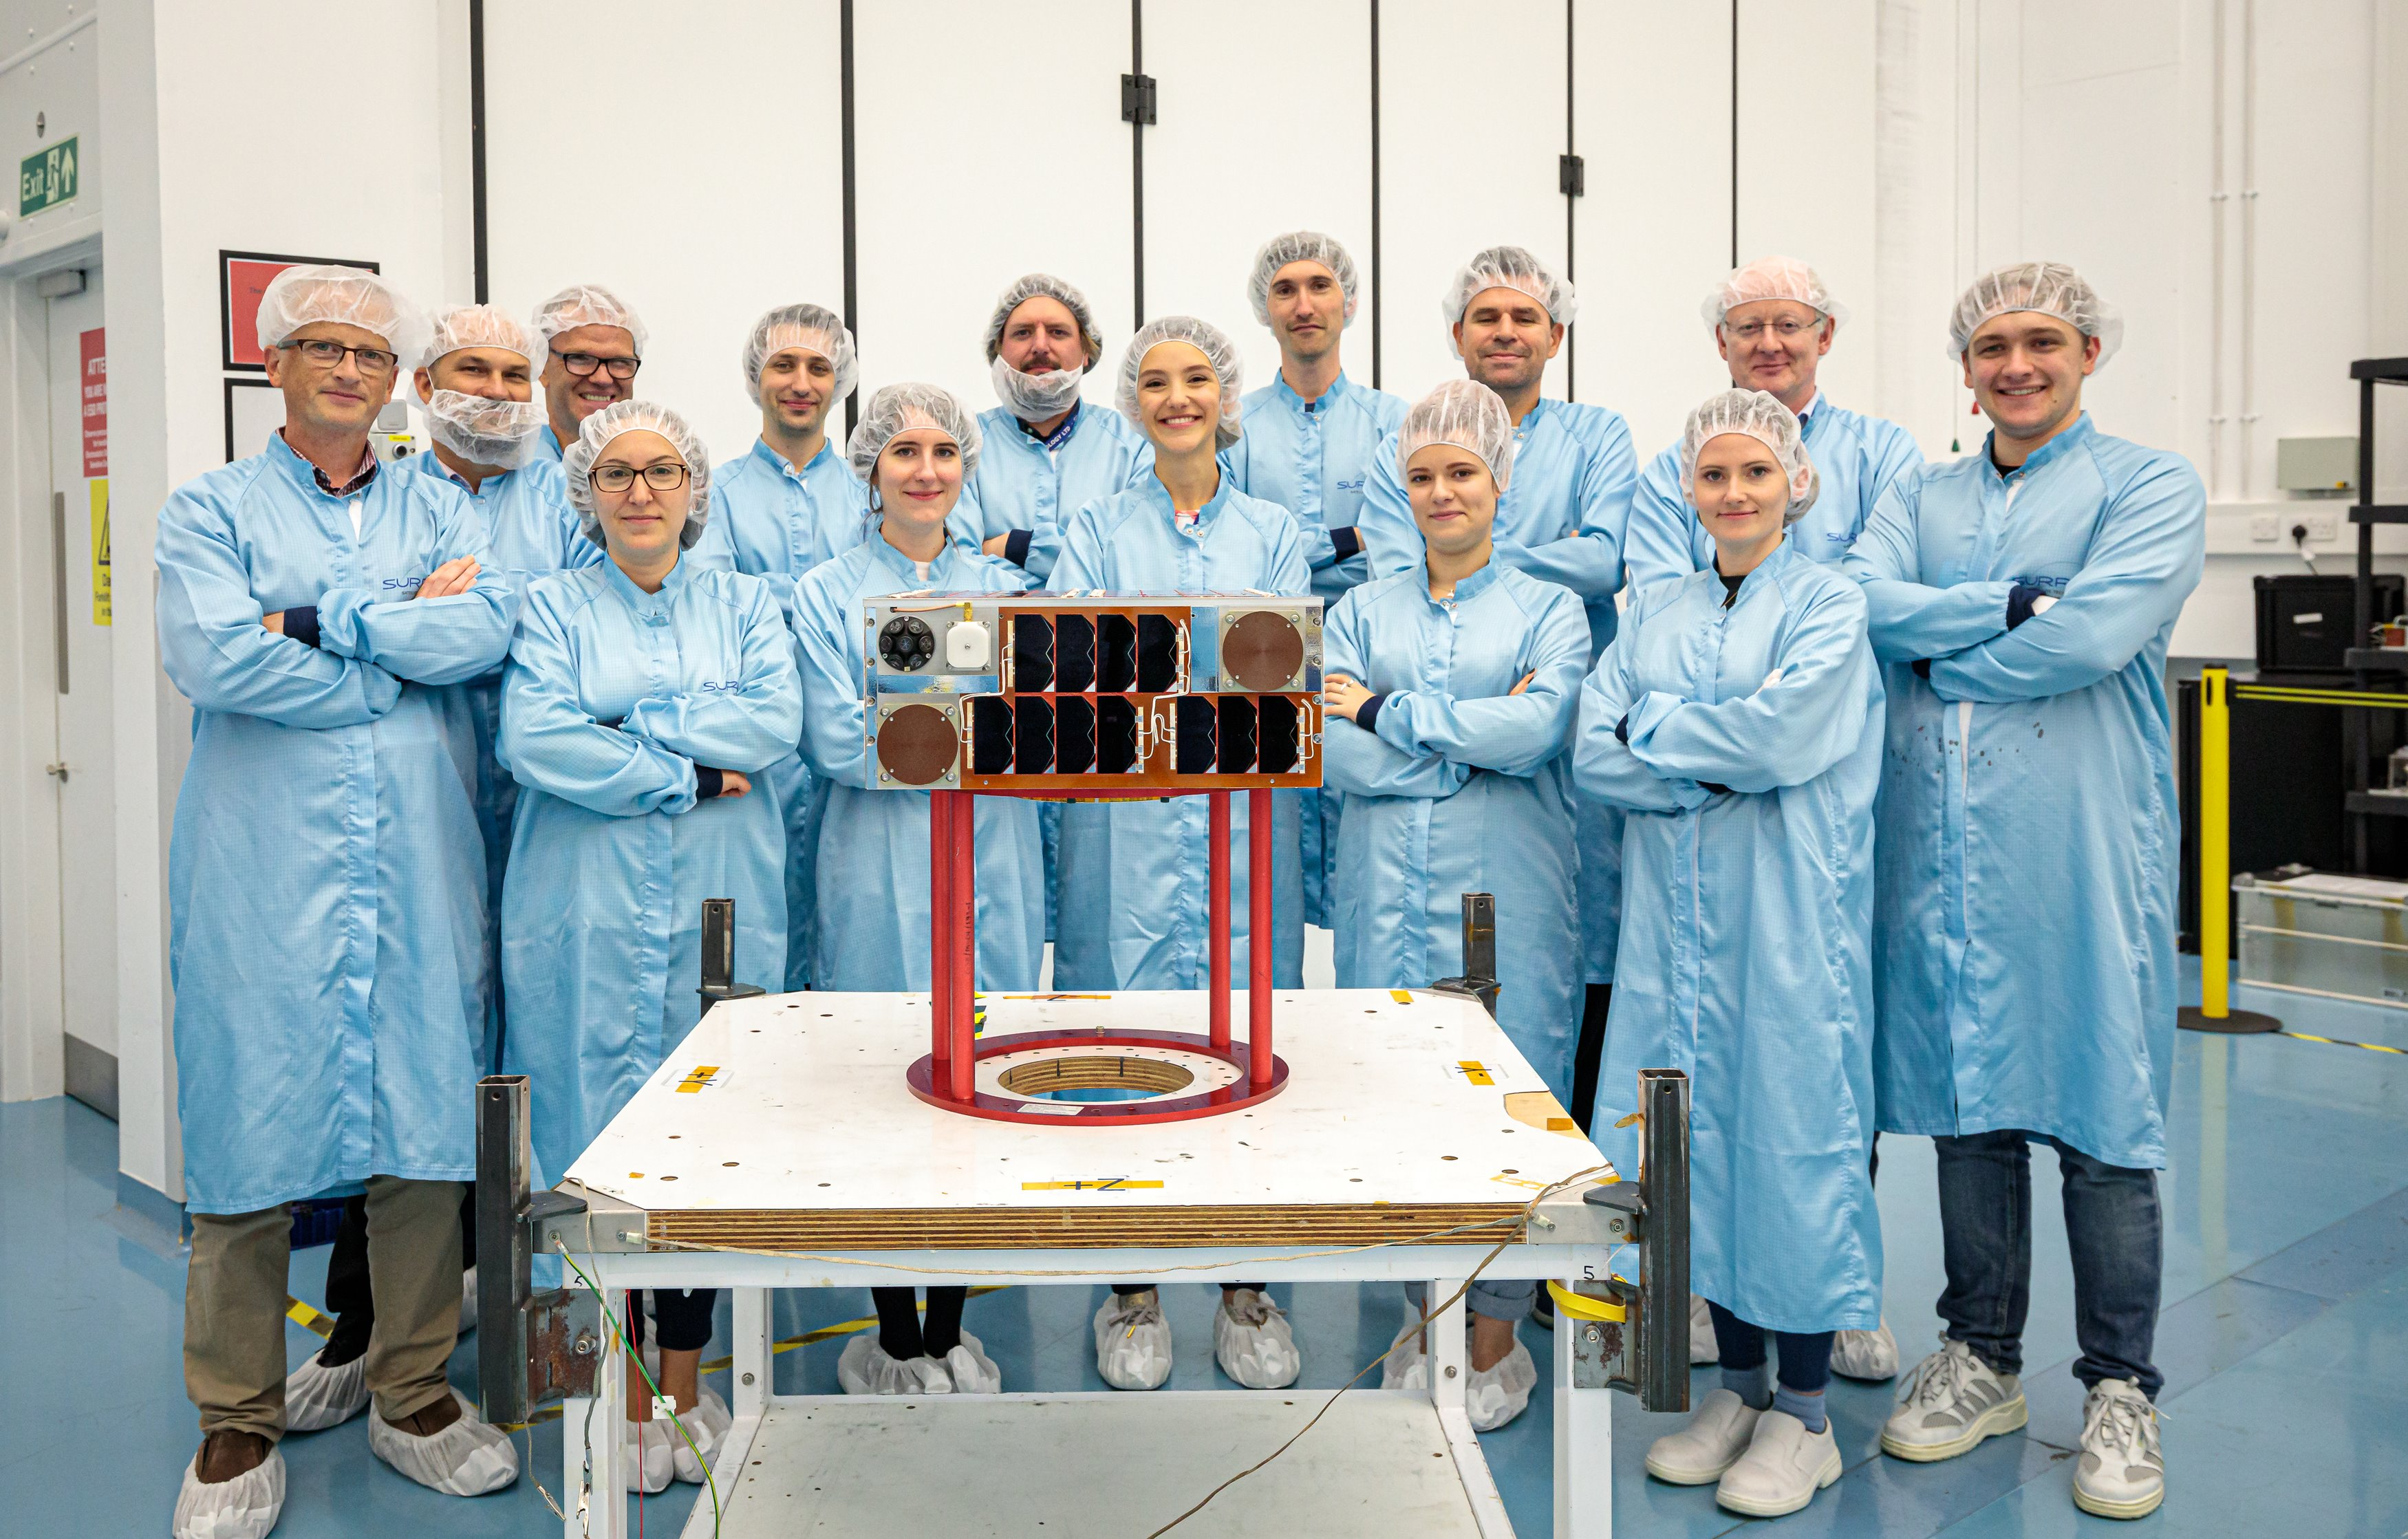 ELSA-d Target satellite with SSTL engineering team, October 2019. Credit SSTL/Kathryn Graham